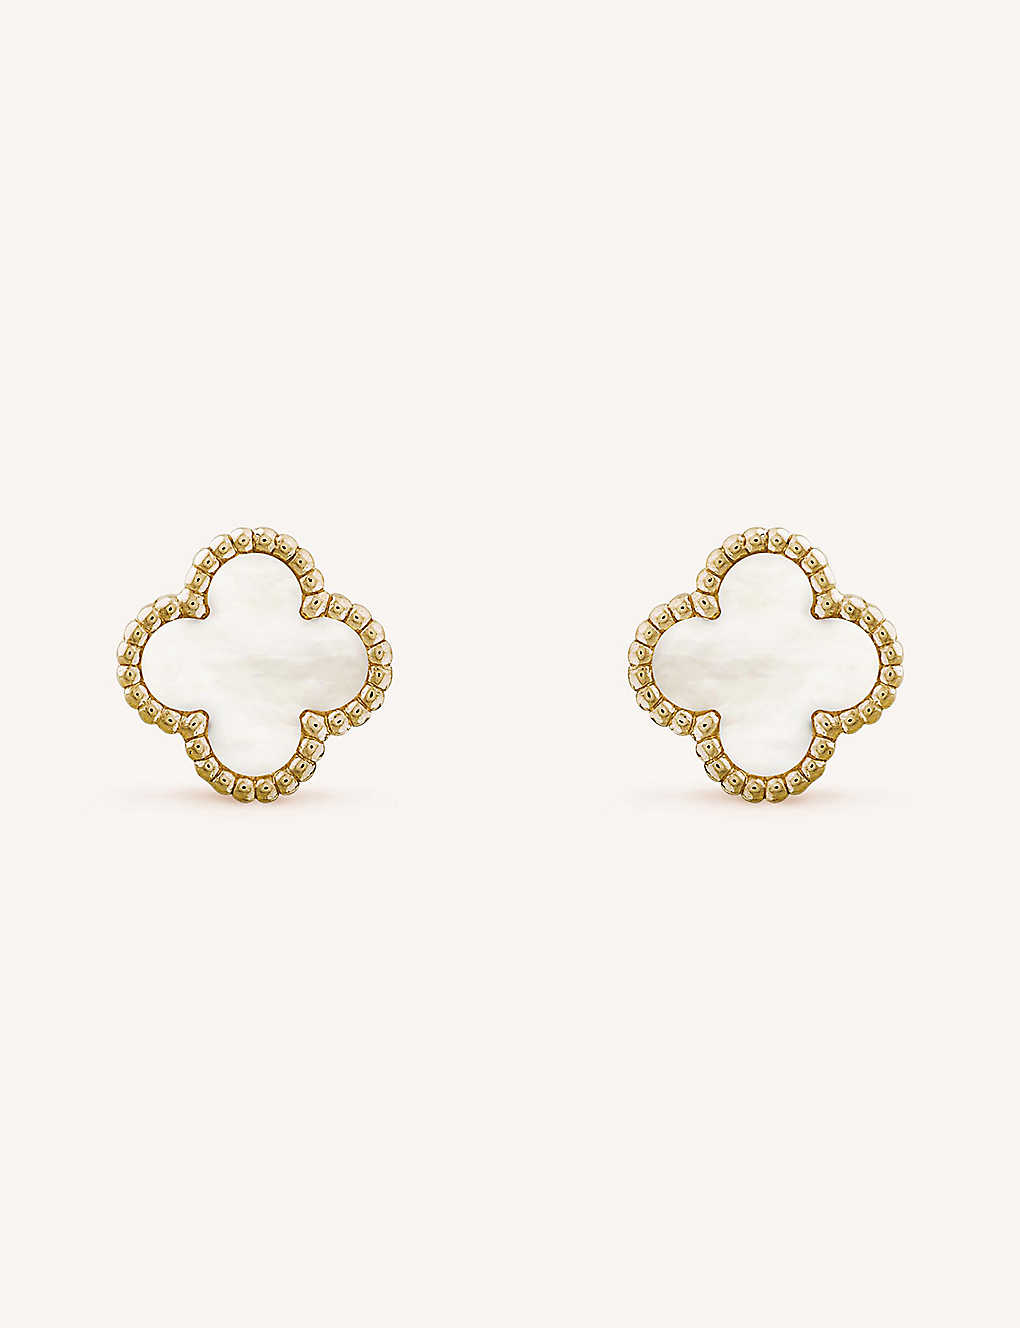 10a618452 VAN CLEEF & ARPELS - Sweet Alhambra gold and mother-of-pearl stud ...